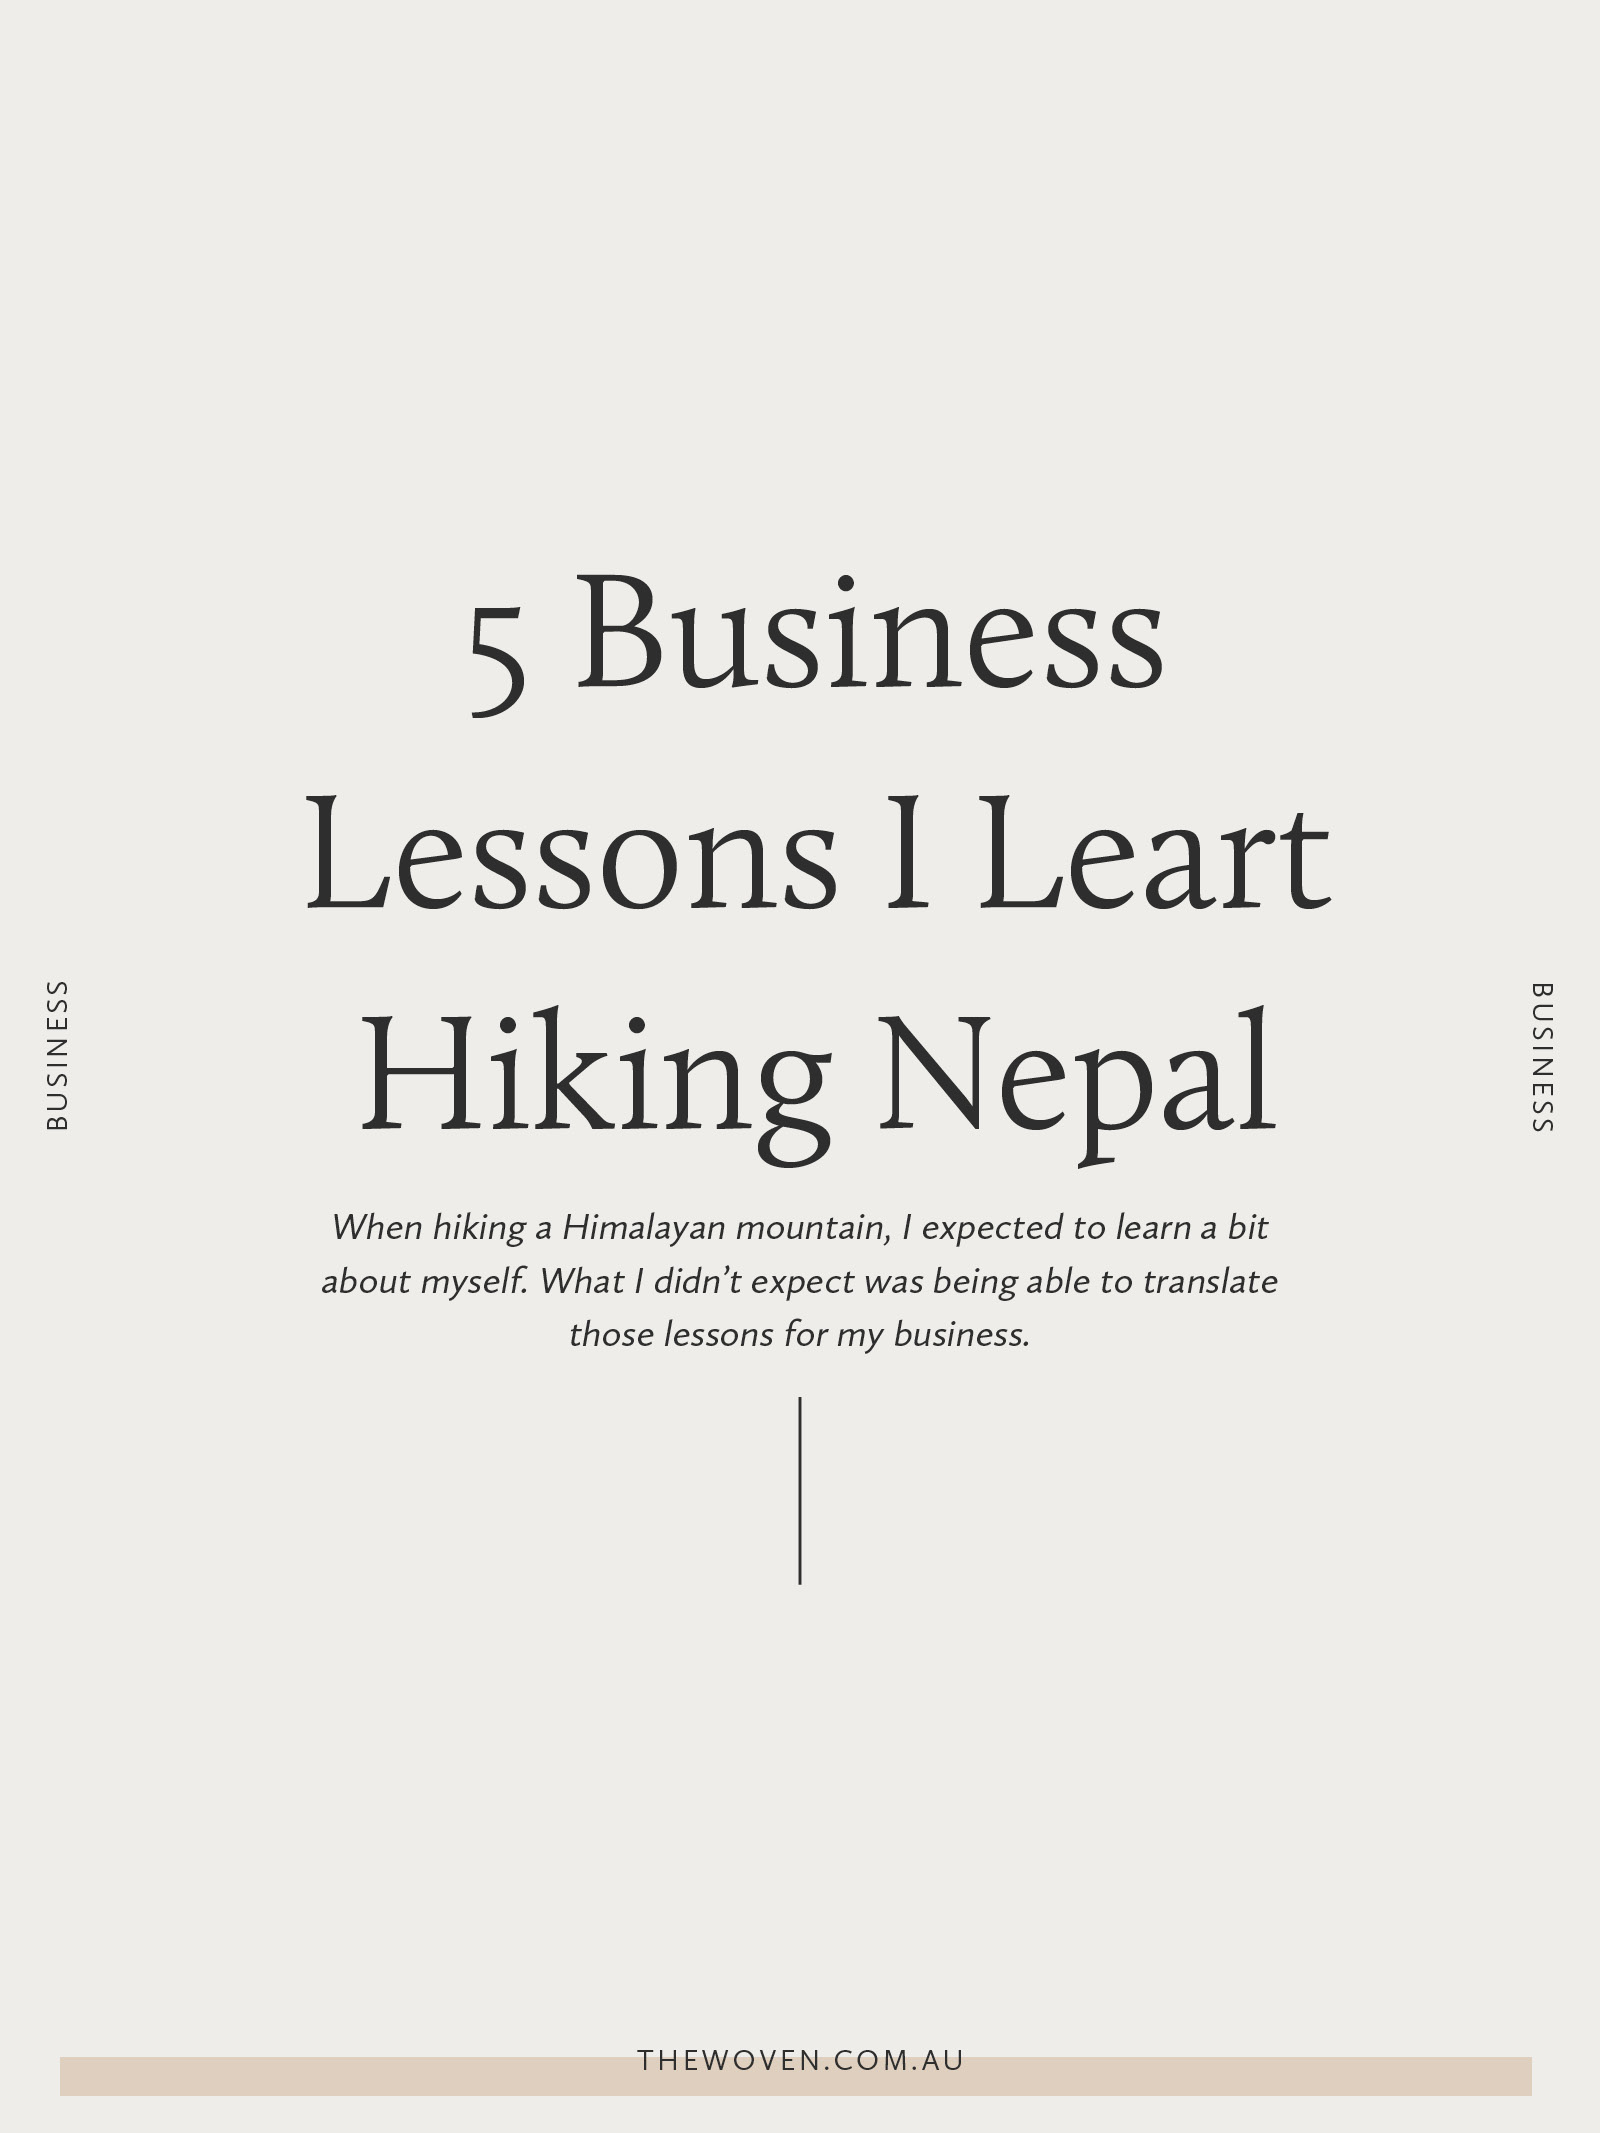 5 lessons I learnt about myself while trekking in Nepal